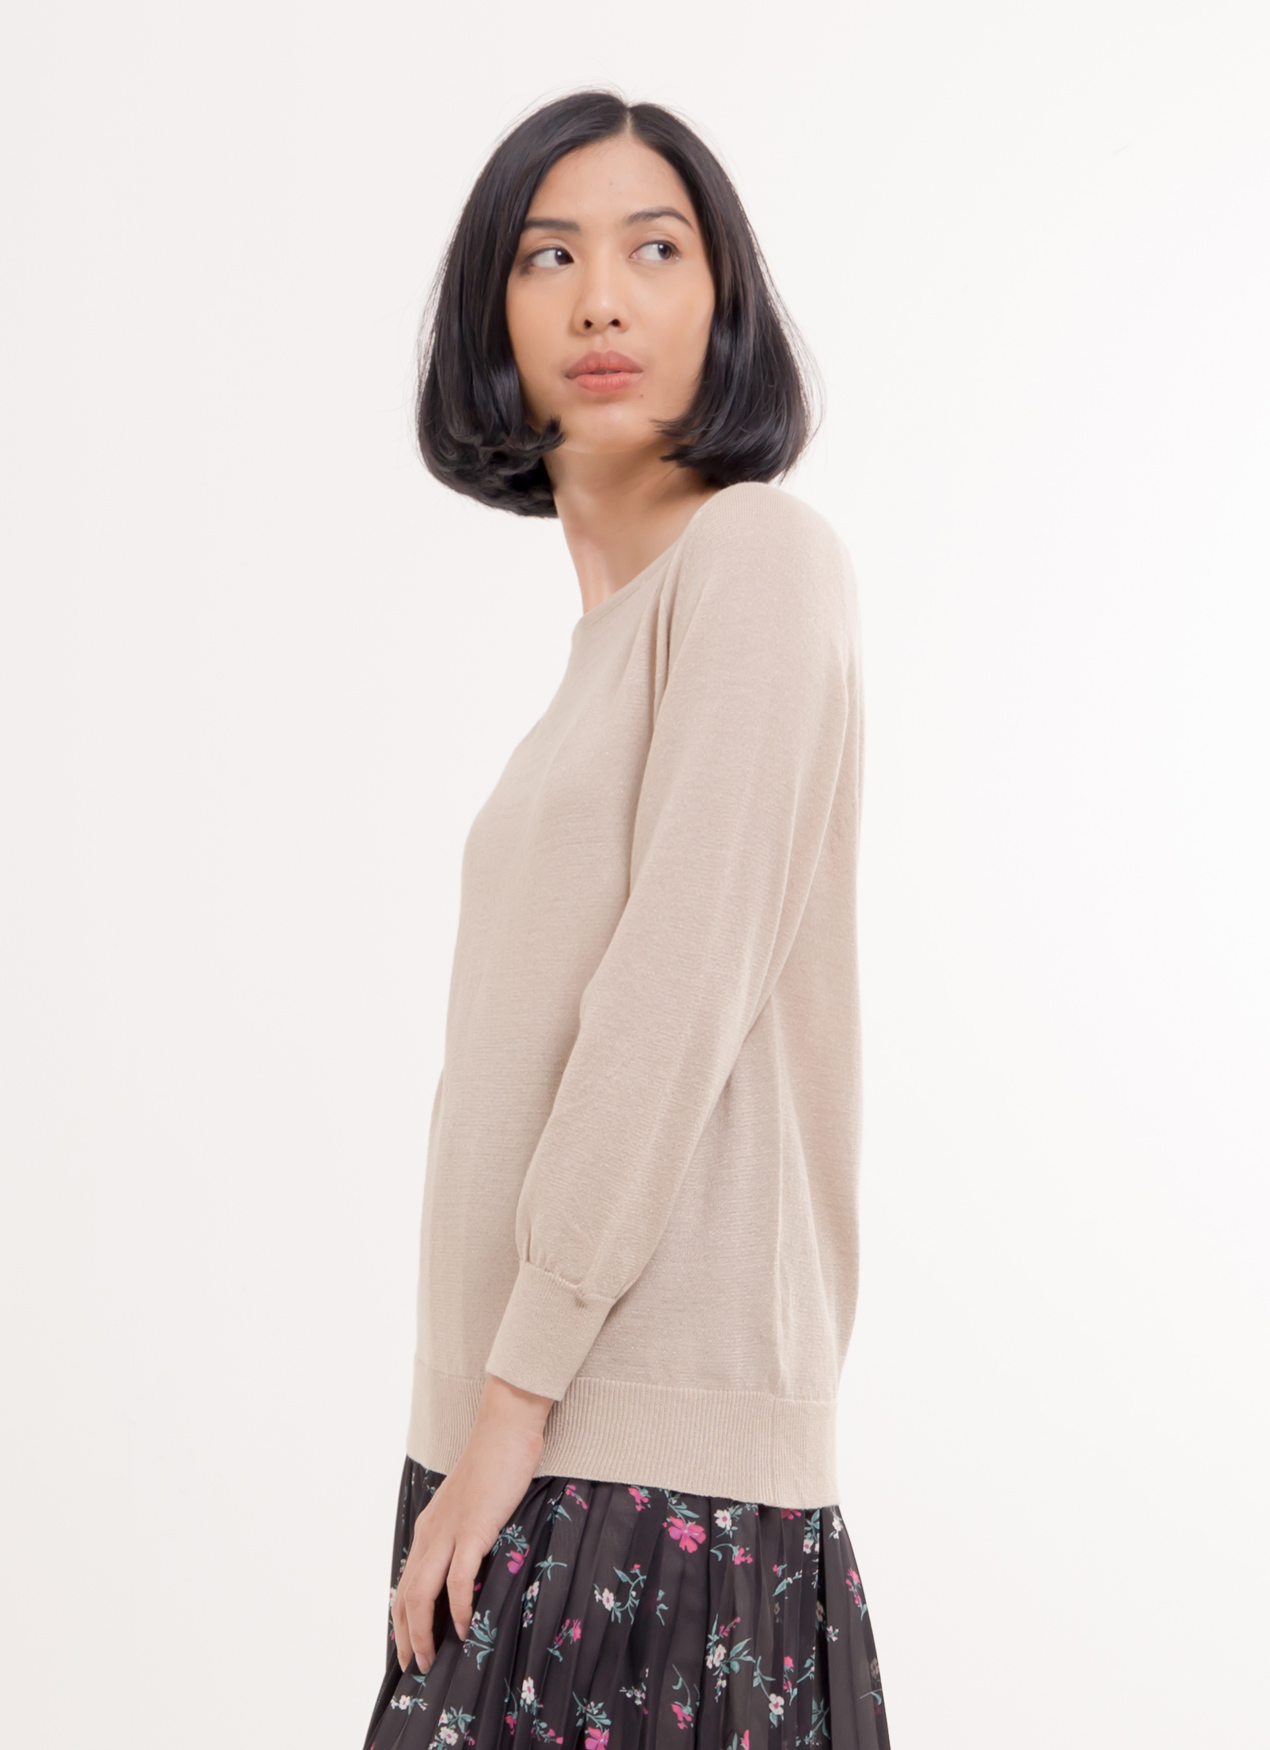 American Holic Karina Top - Gray Beige